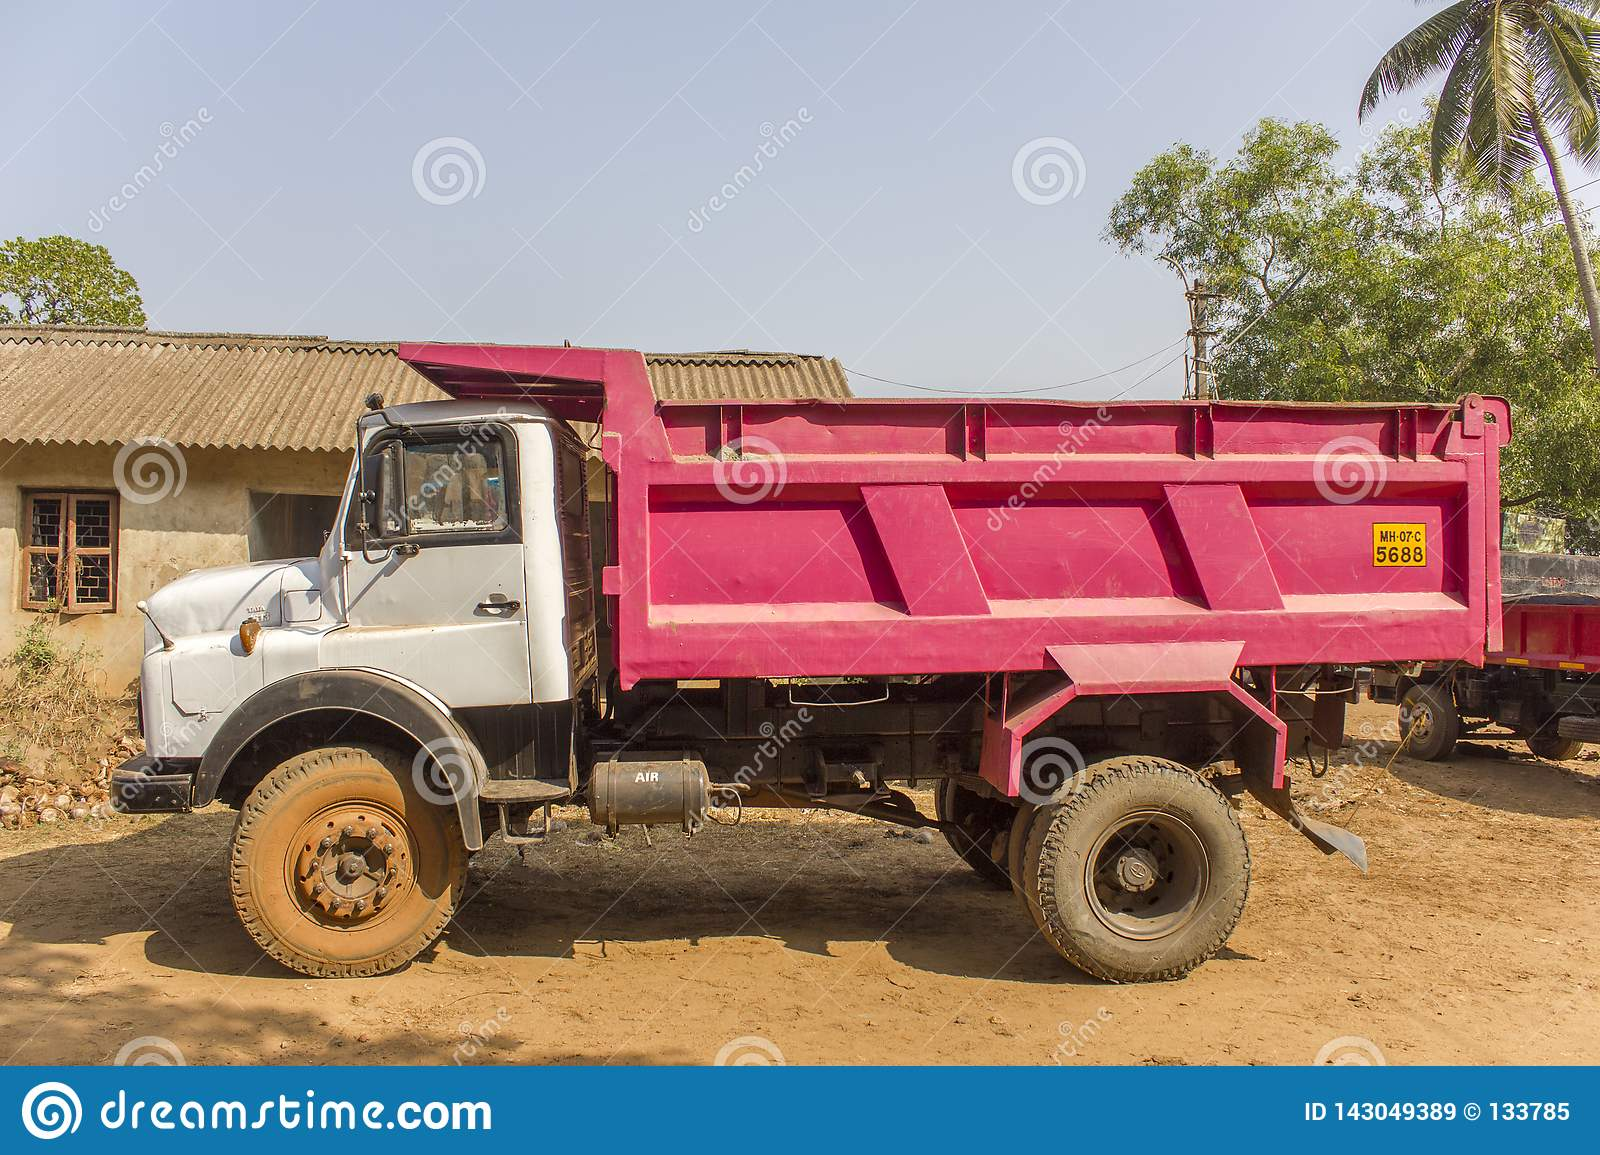 Indian white pink truck on the background of the village house and green palm